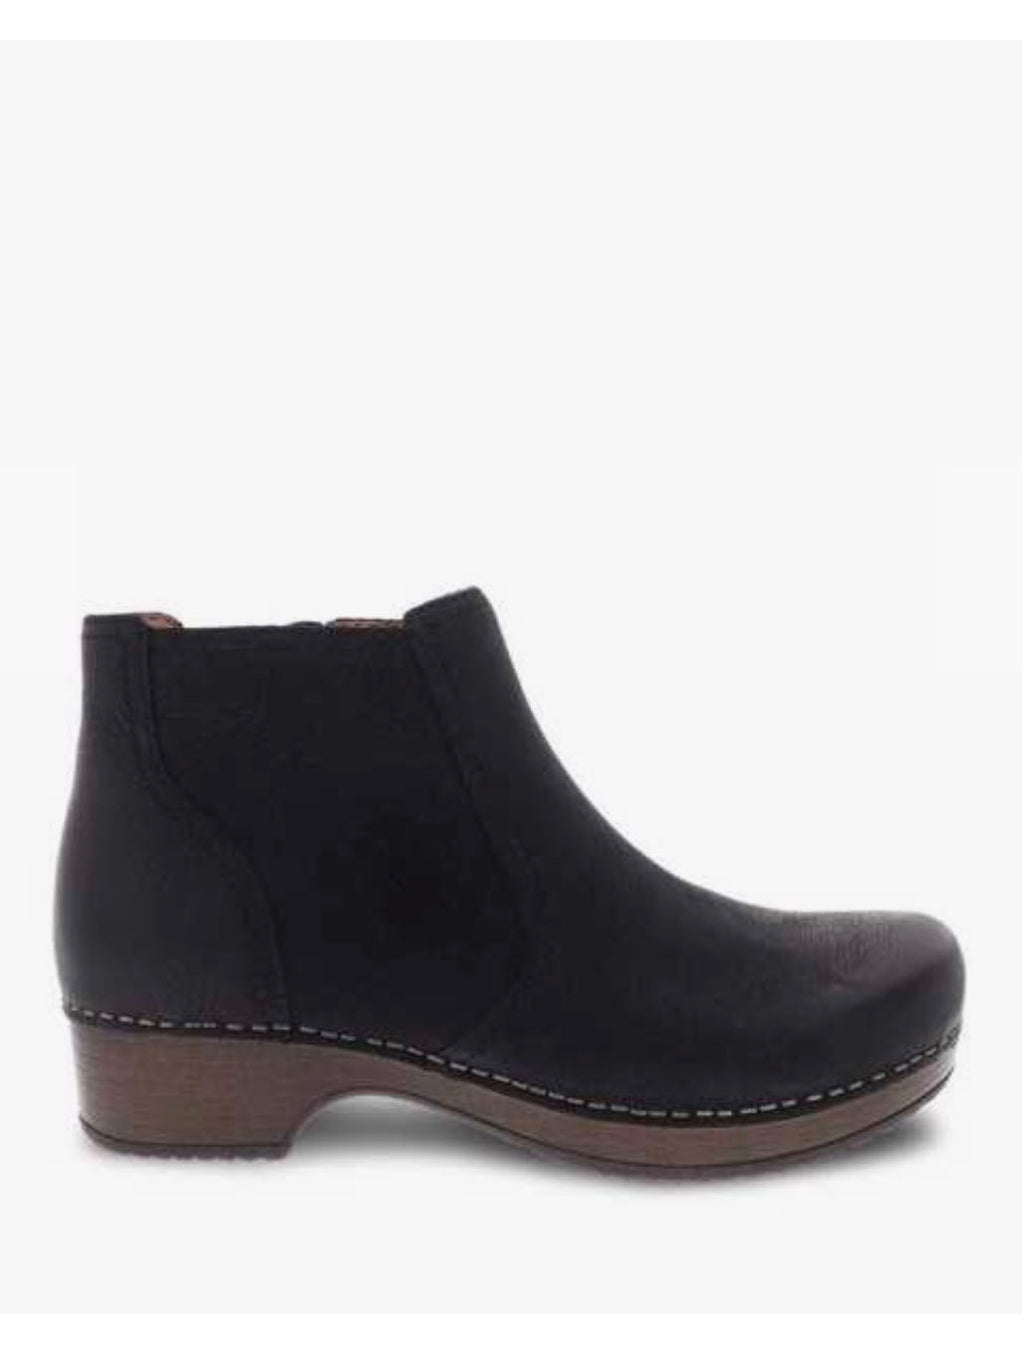 Dansko Barbara Clog Boot in Black